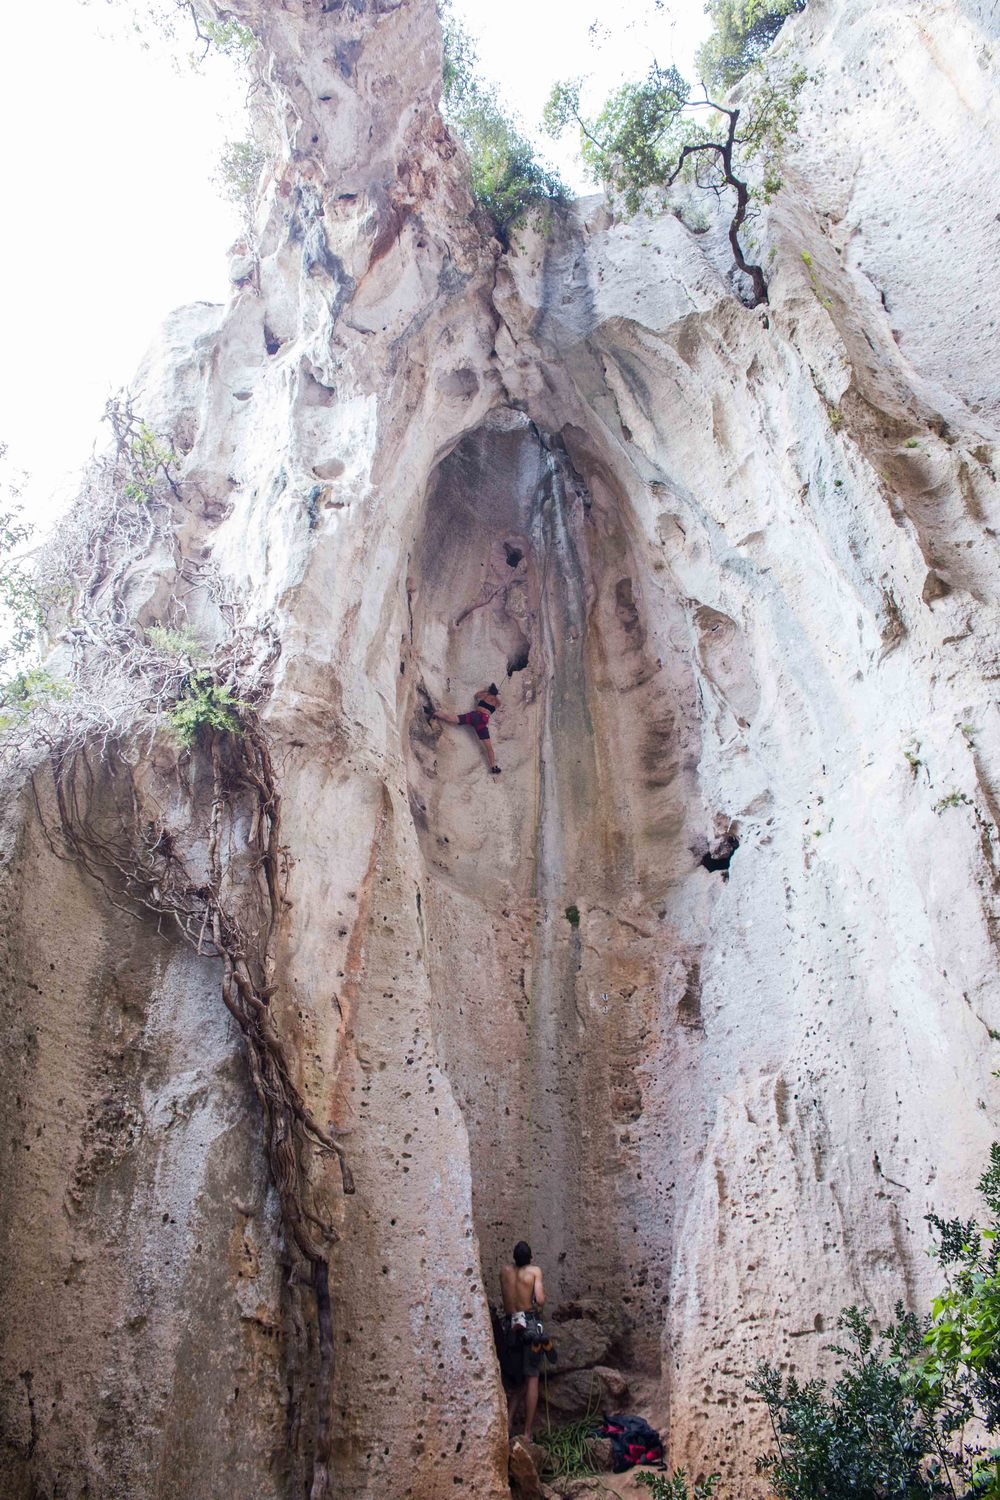 Thats me working on Bomolo a 6b in the grotto dell'edera, stunning route!